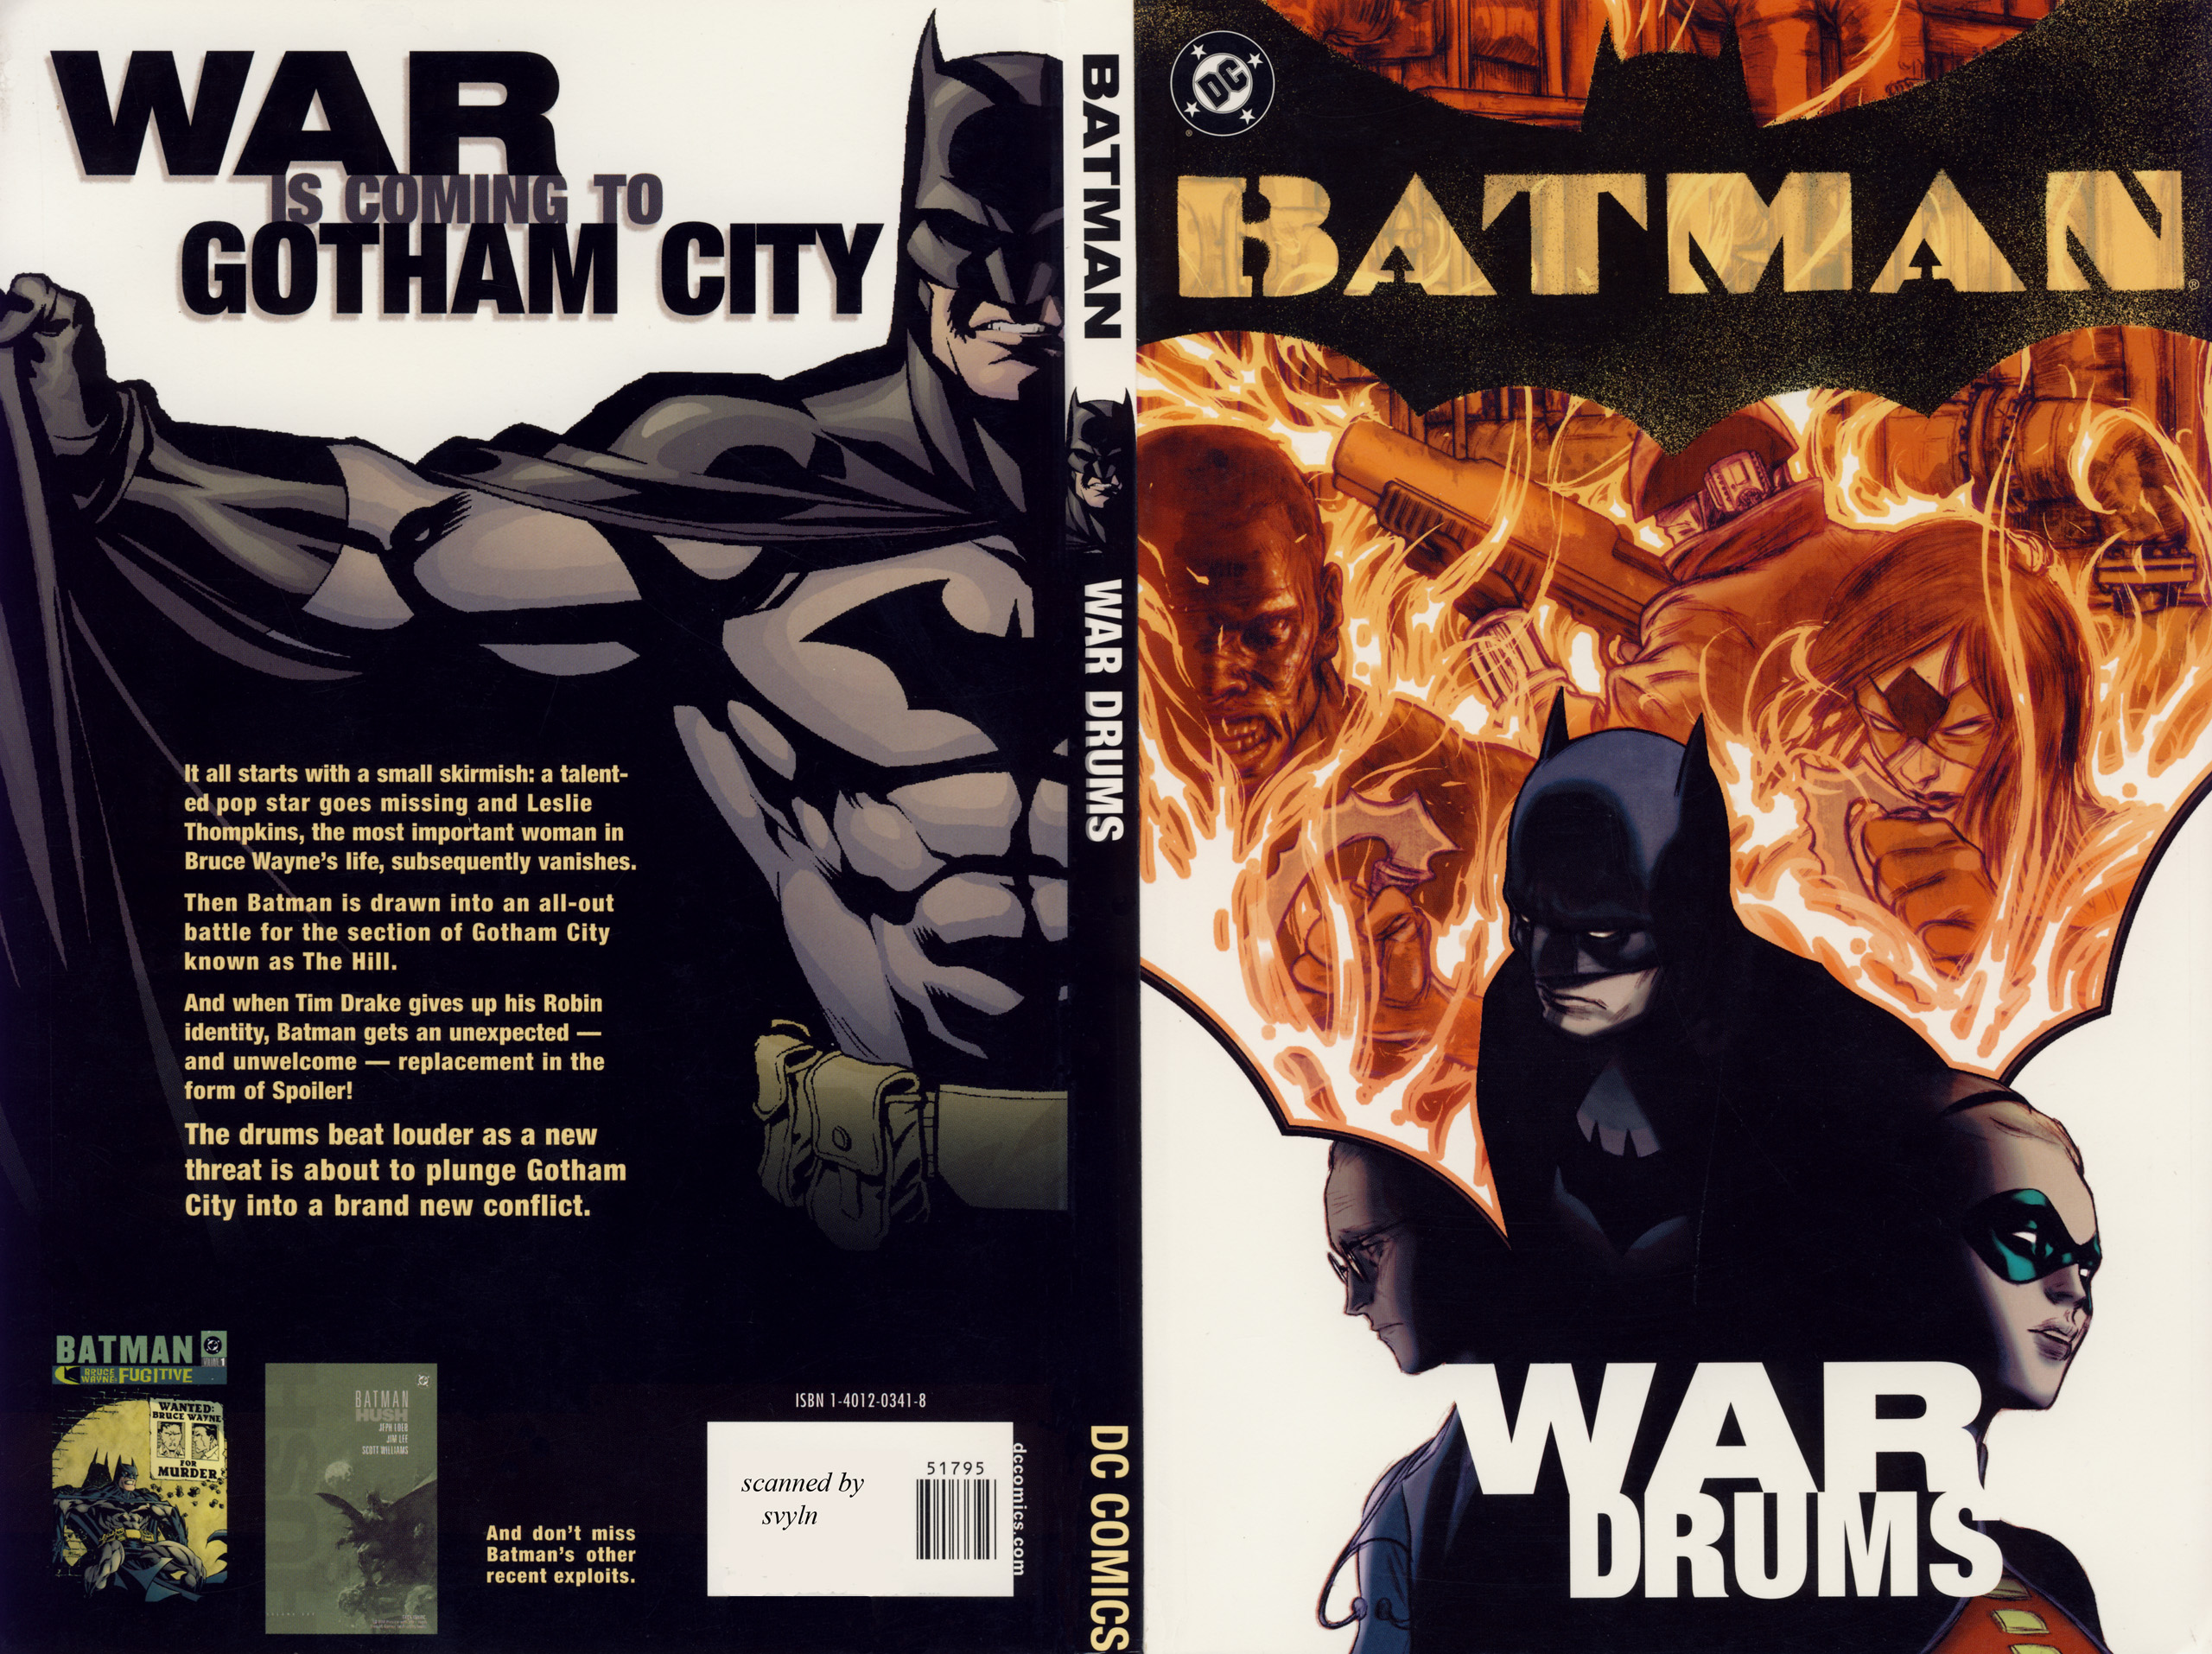 Read online Batman War Drums comic -  Issue # TPB - 1